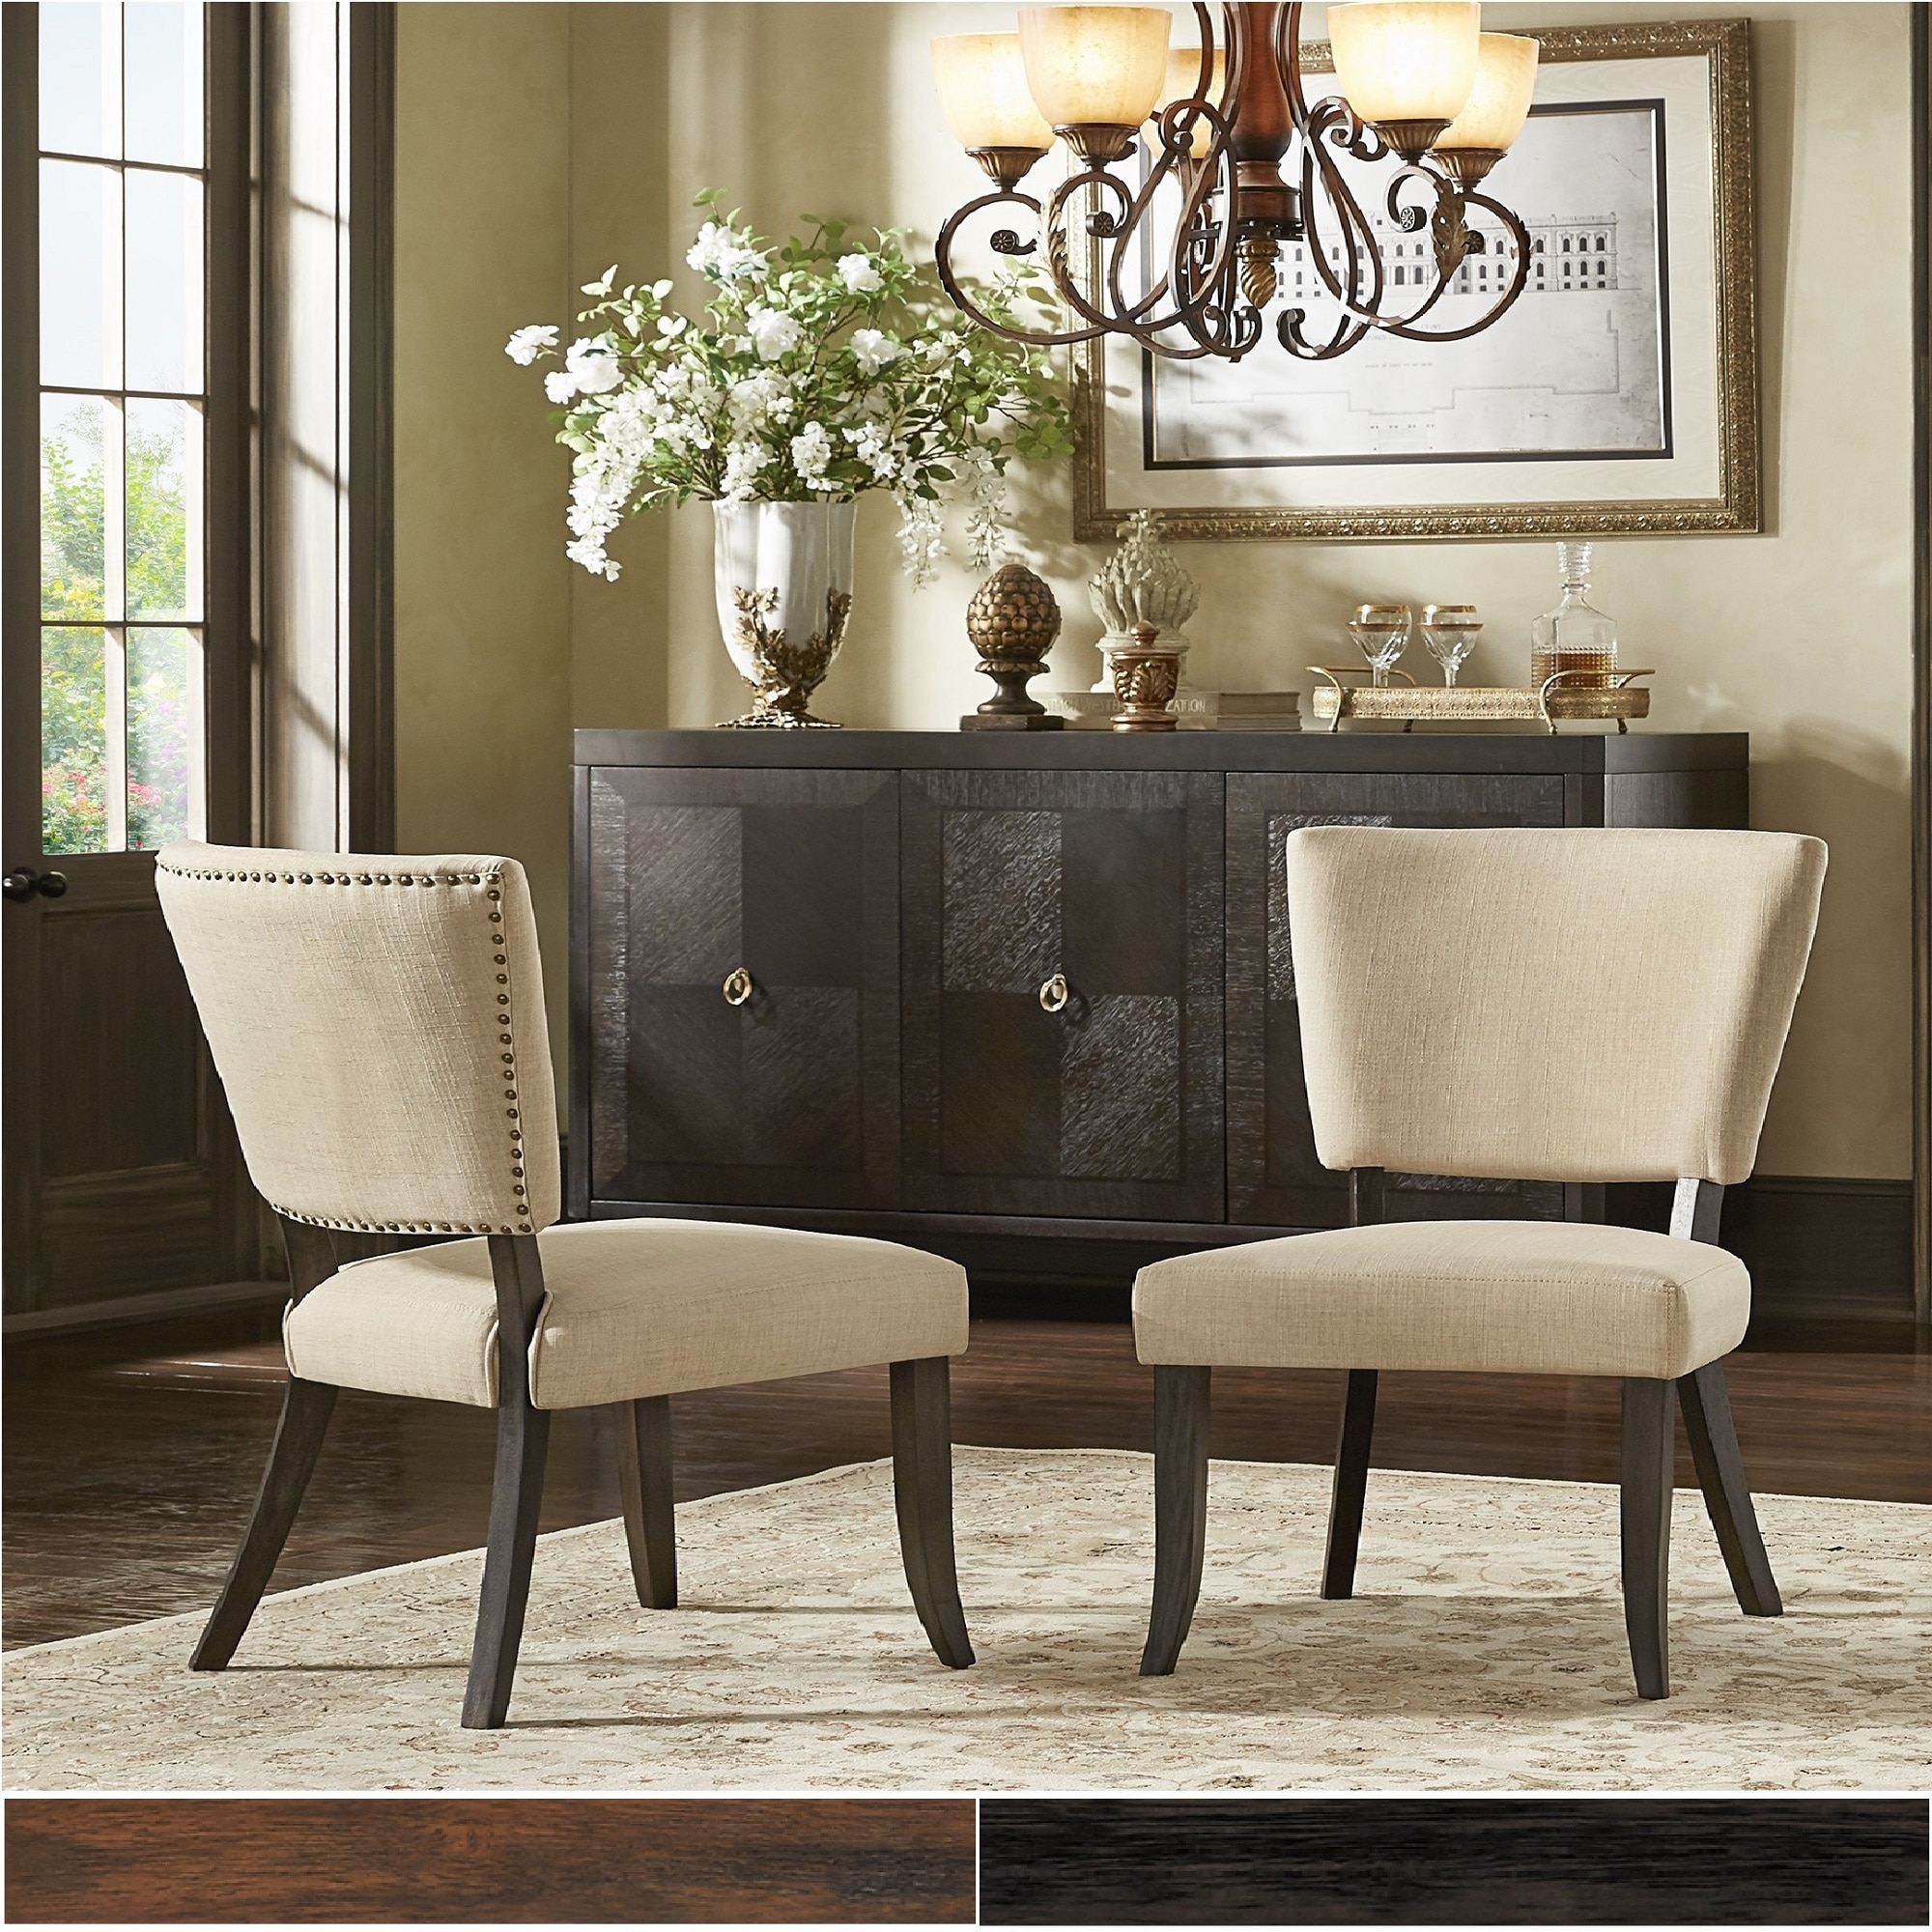 Strange Rawlings Beige Linen Nailhead Dining Chairs Set Of 2 By Inspire Q Artisan Bralicious Painted Fabric Chair Ideas Braliciousco